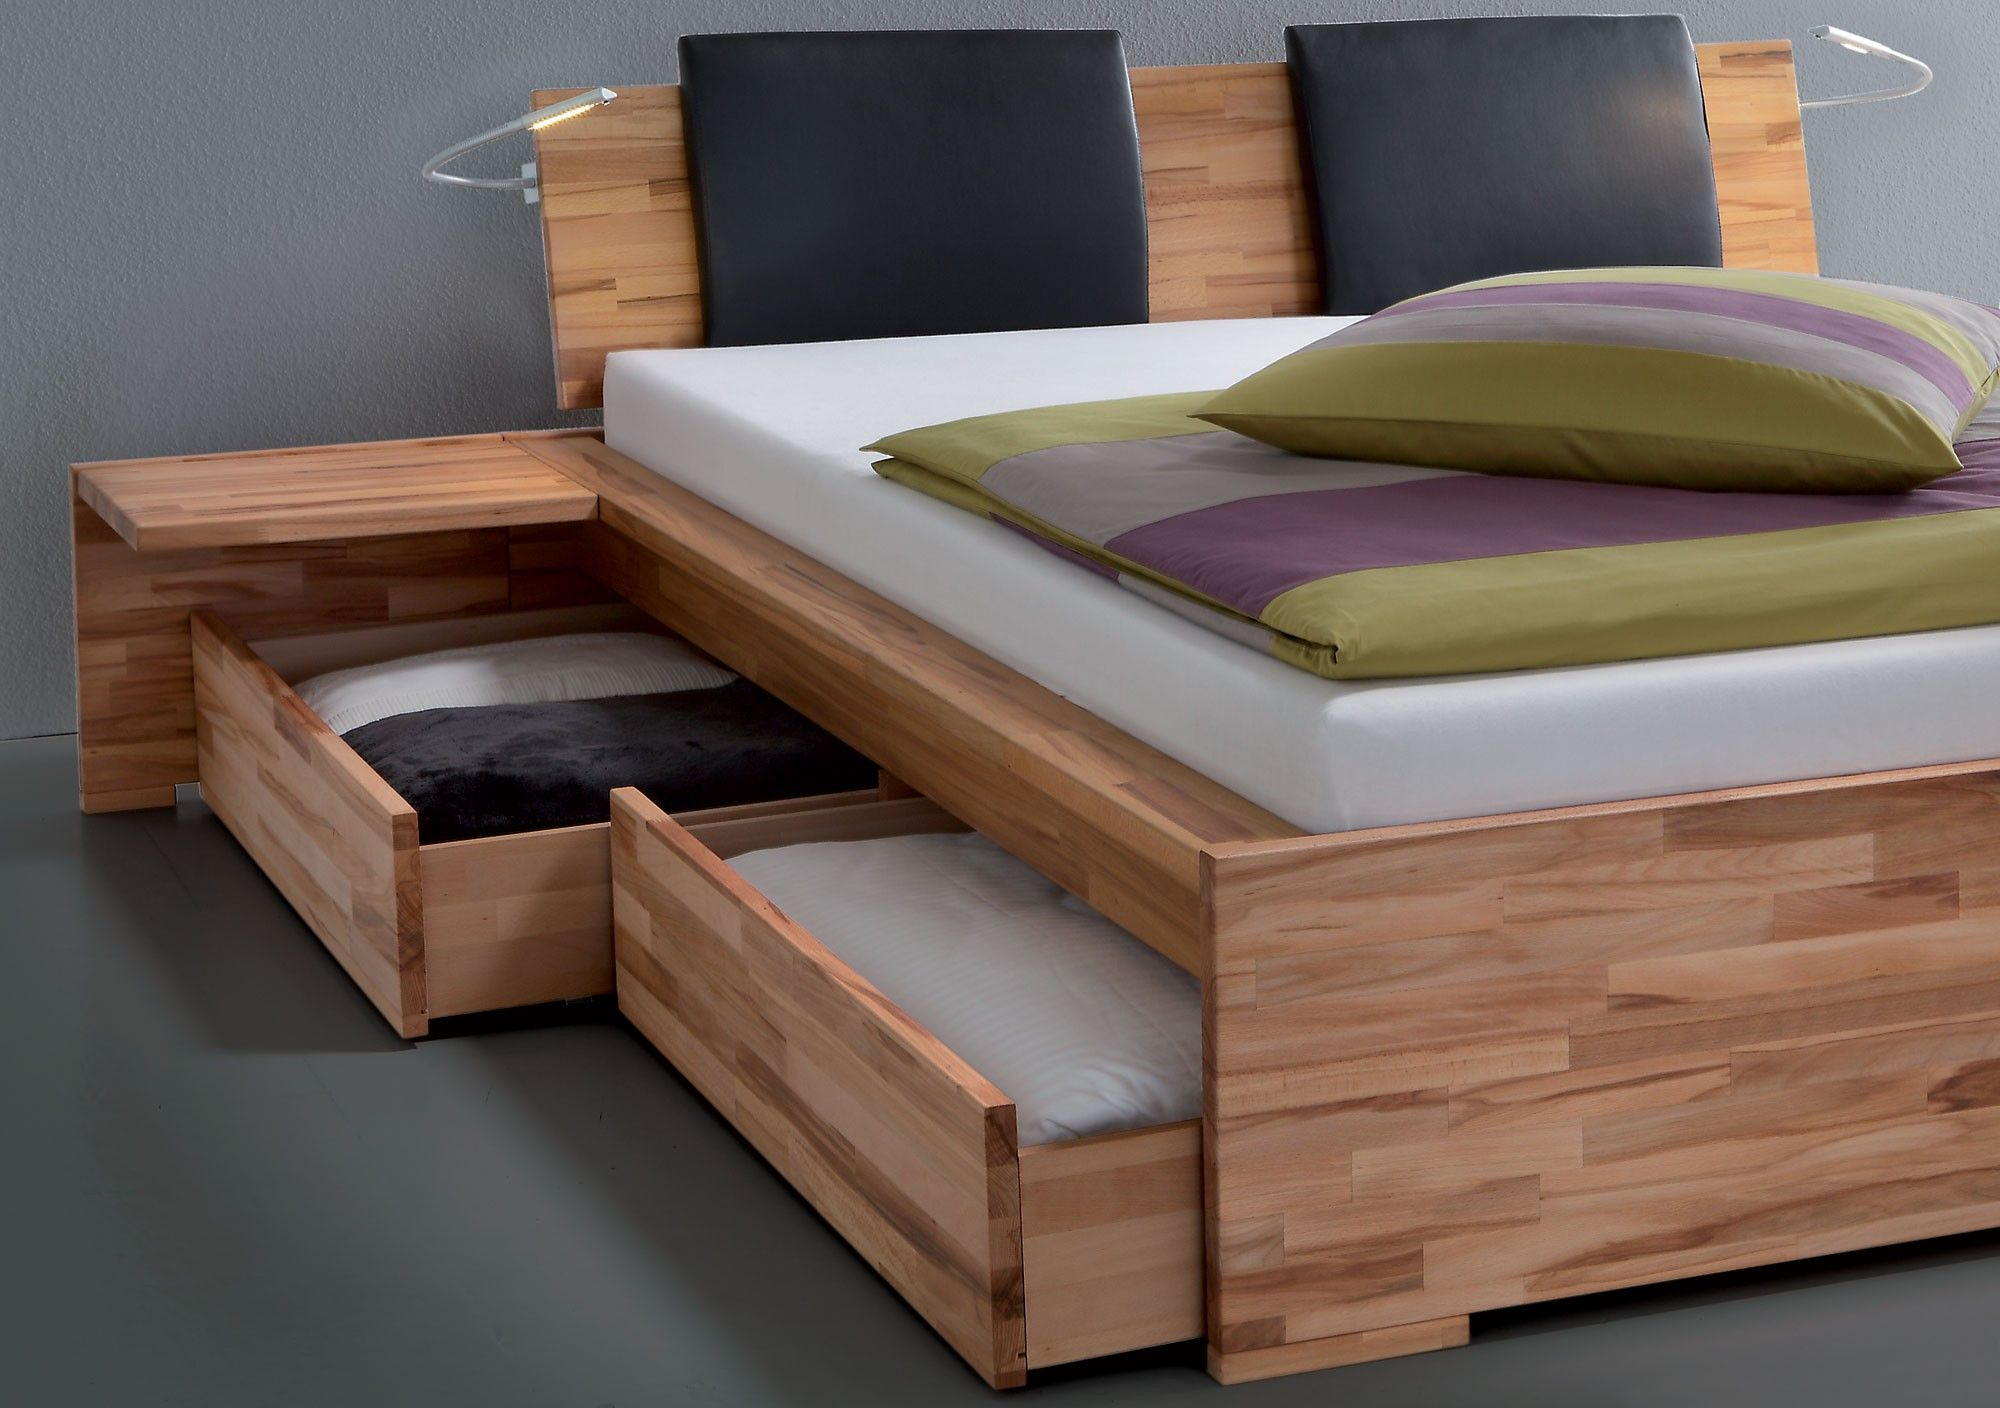 Wooden Beds With Storage ~ Likable storage beds nyc inspiration … pinteres…